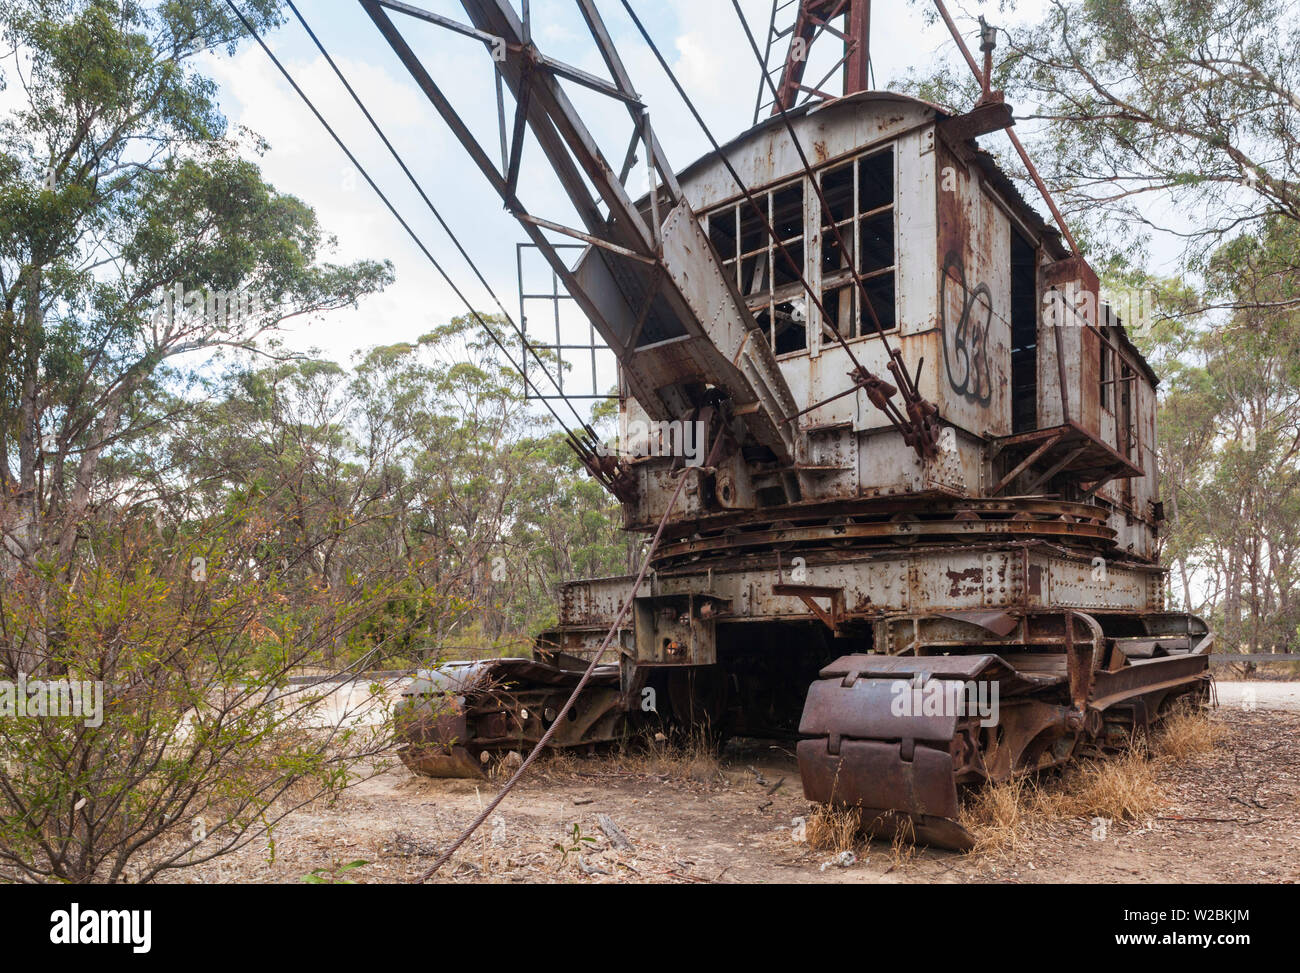 Australia, Victoria, VIC, Castlemaine, old gold mine dredging machinery - Stock Image